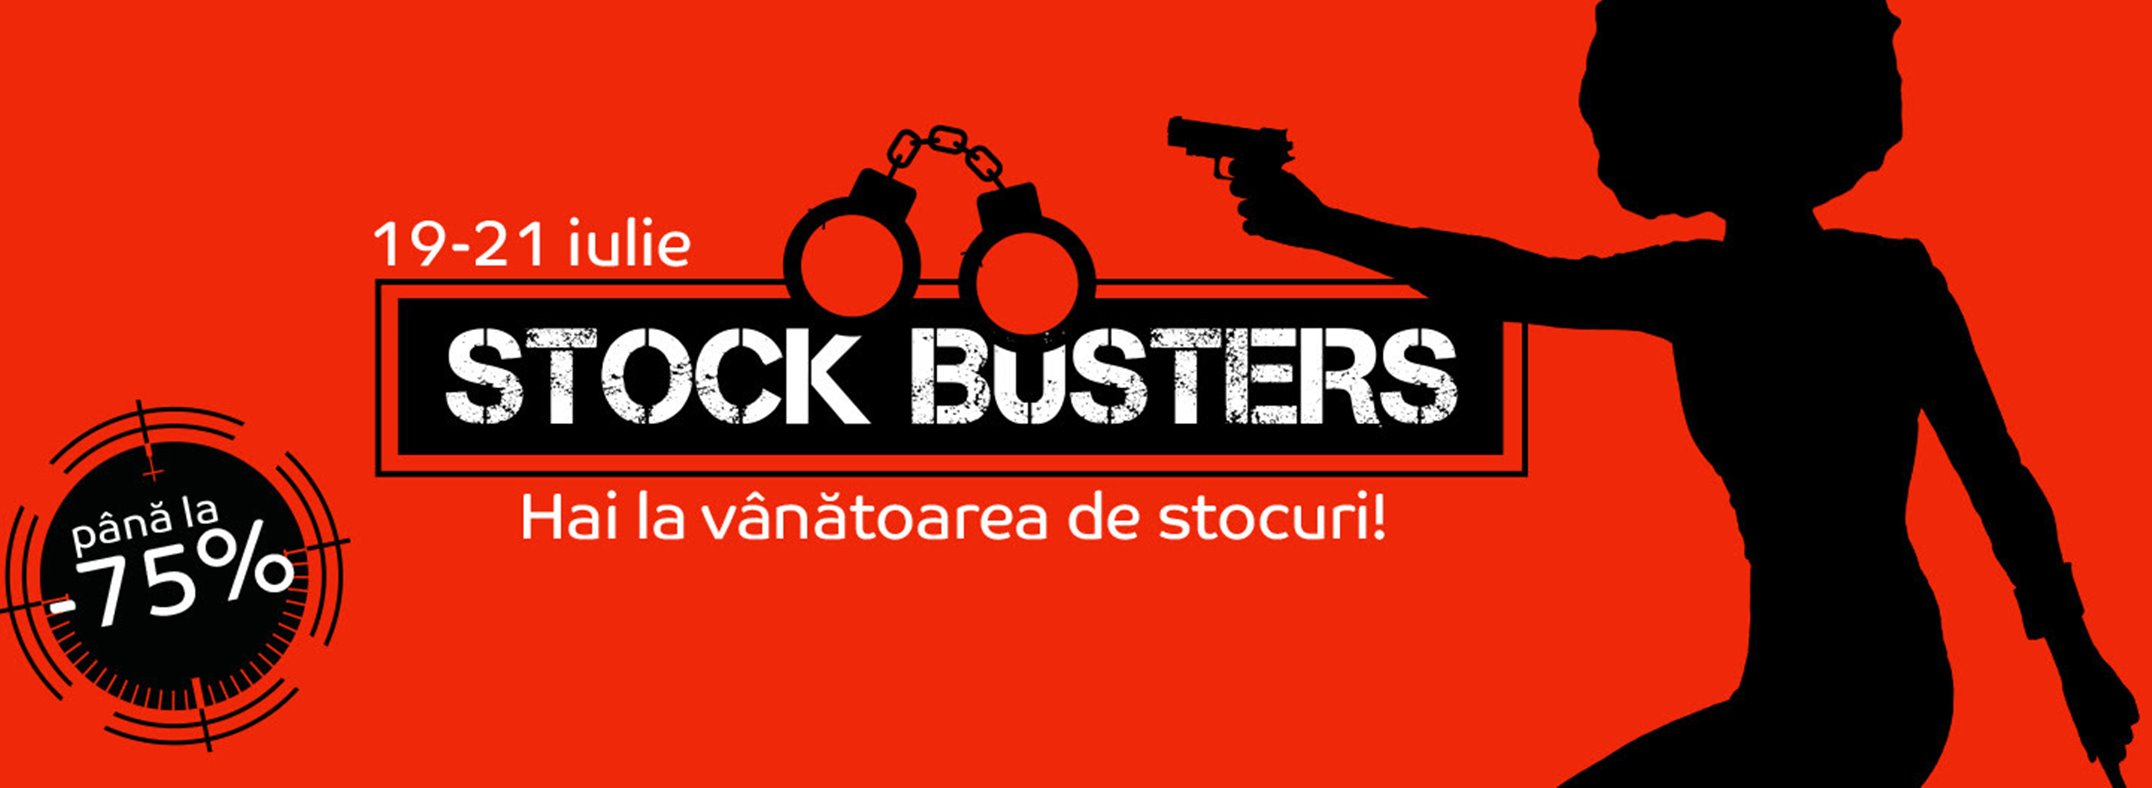 stocks busters